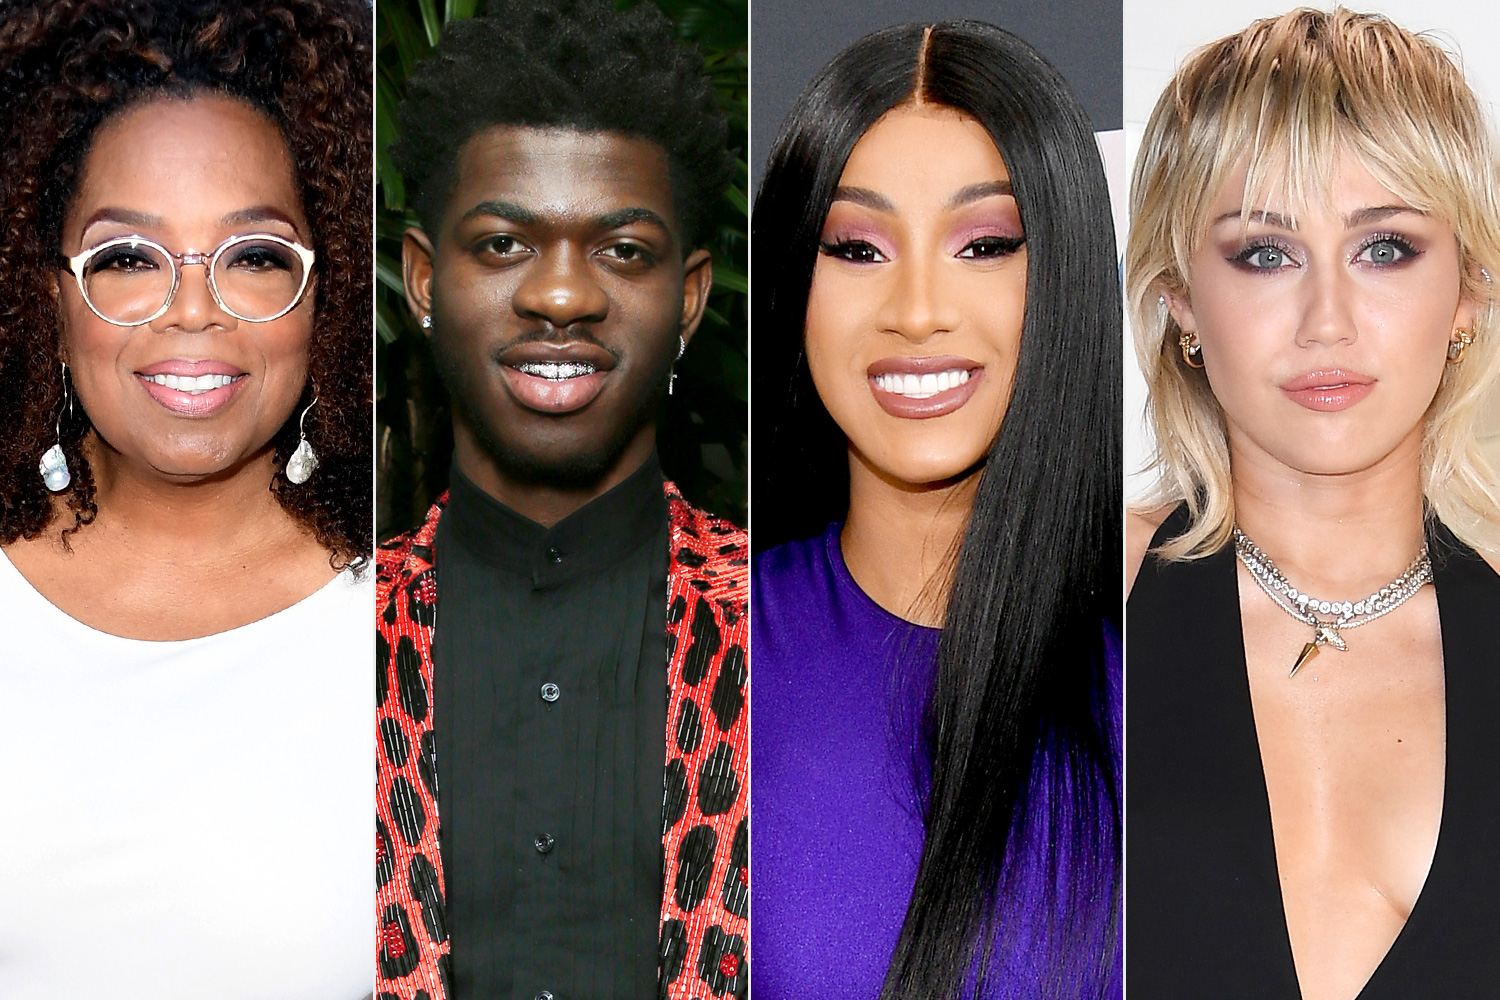 Cardi B, Oprah, Lil Nas X and Miley Cyrus virtual commencement speeches